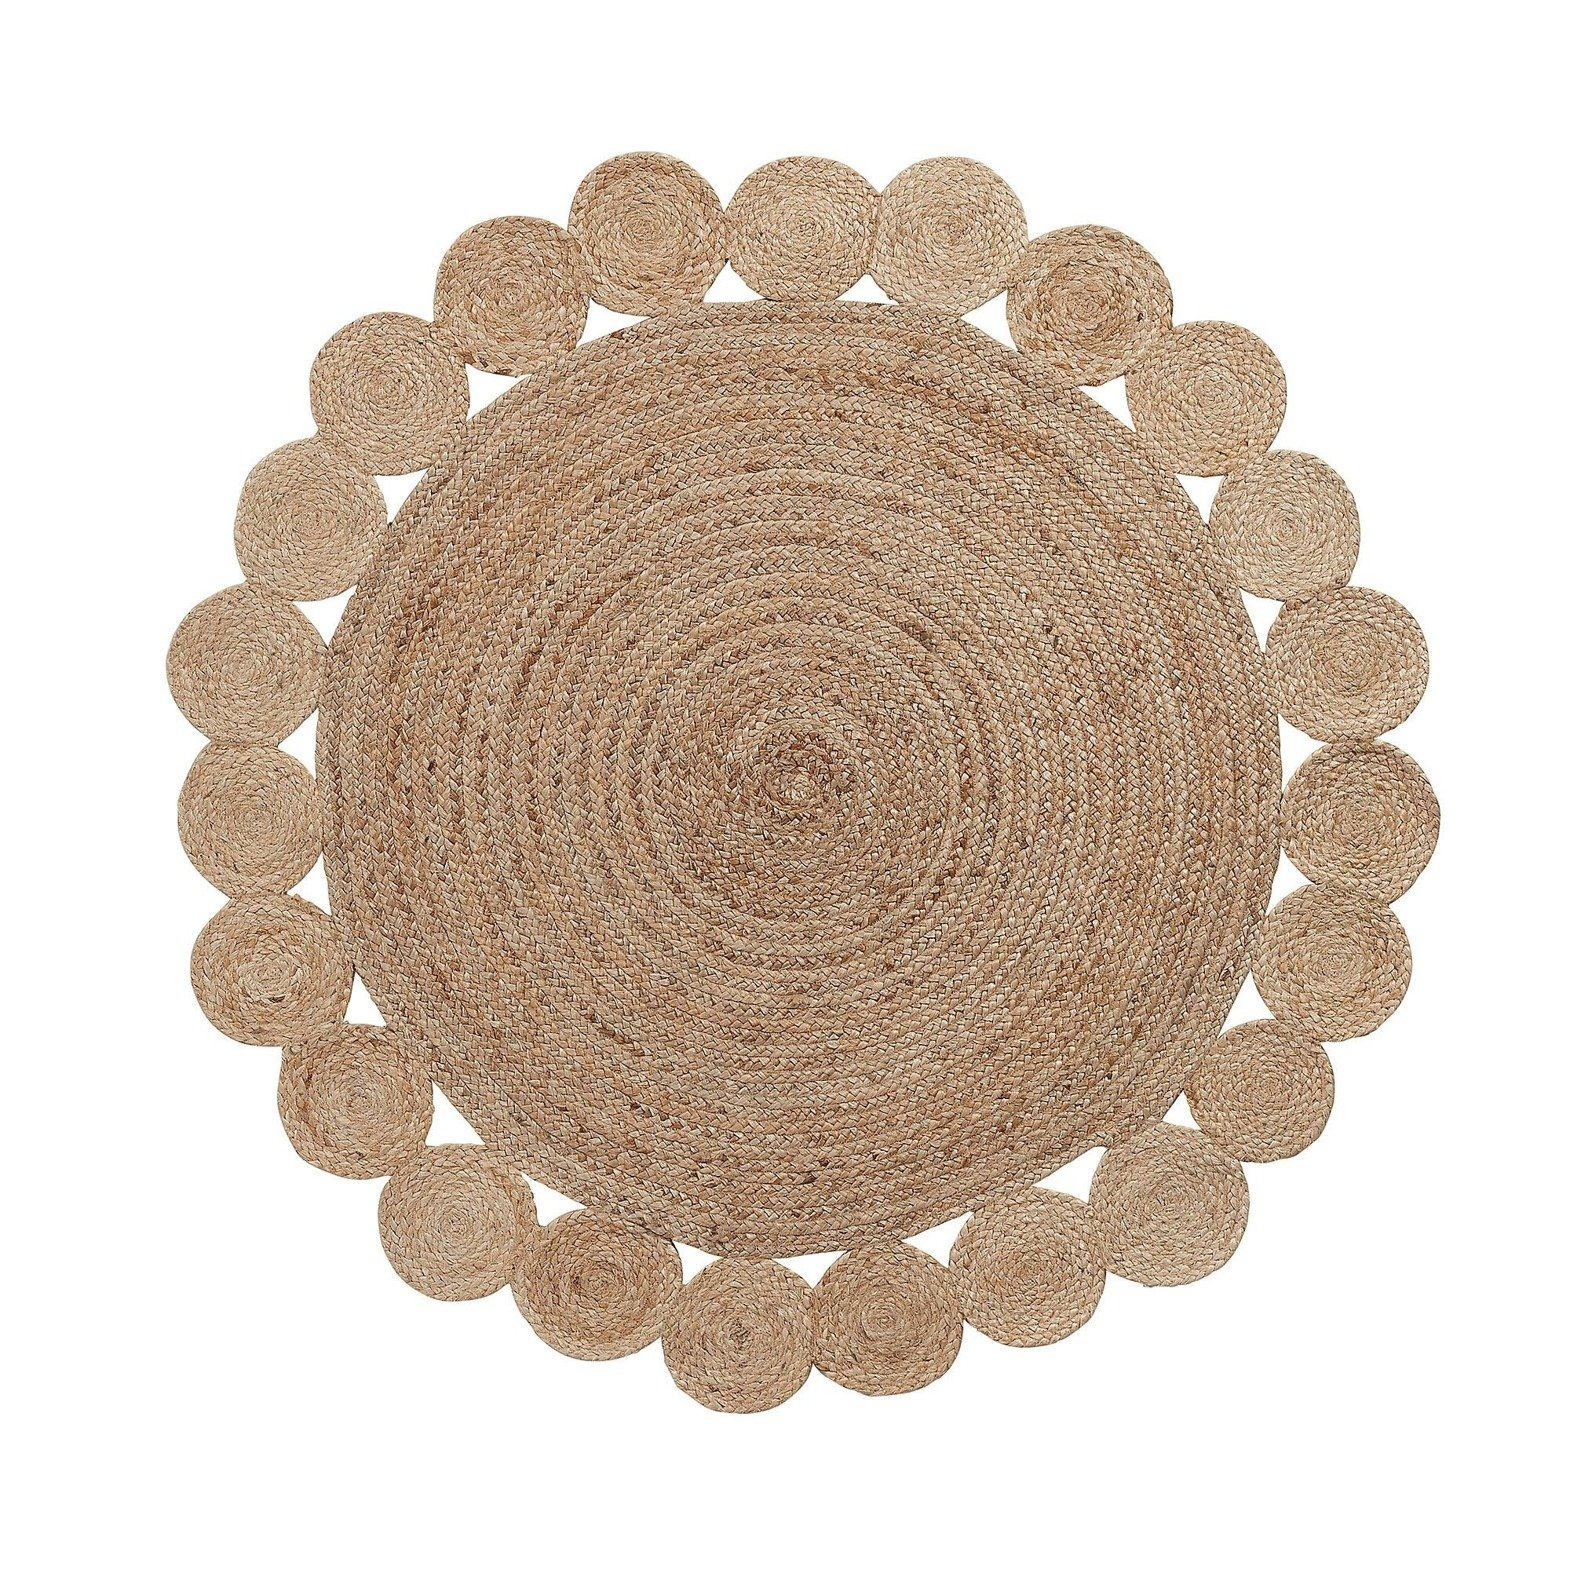 Carpet round COSM 150x150 natural color